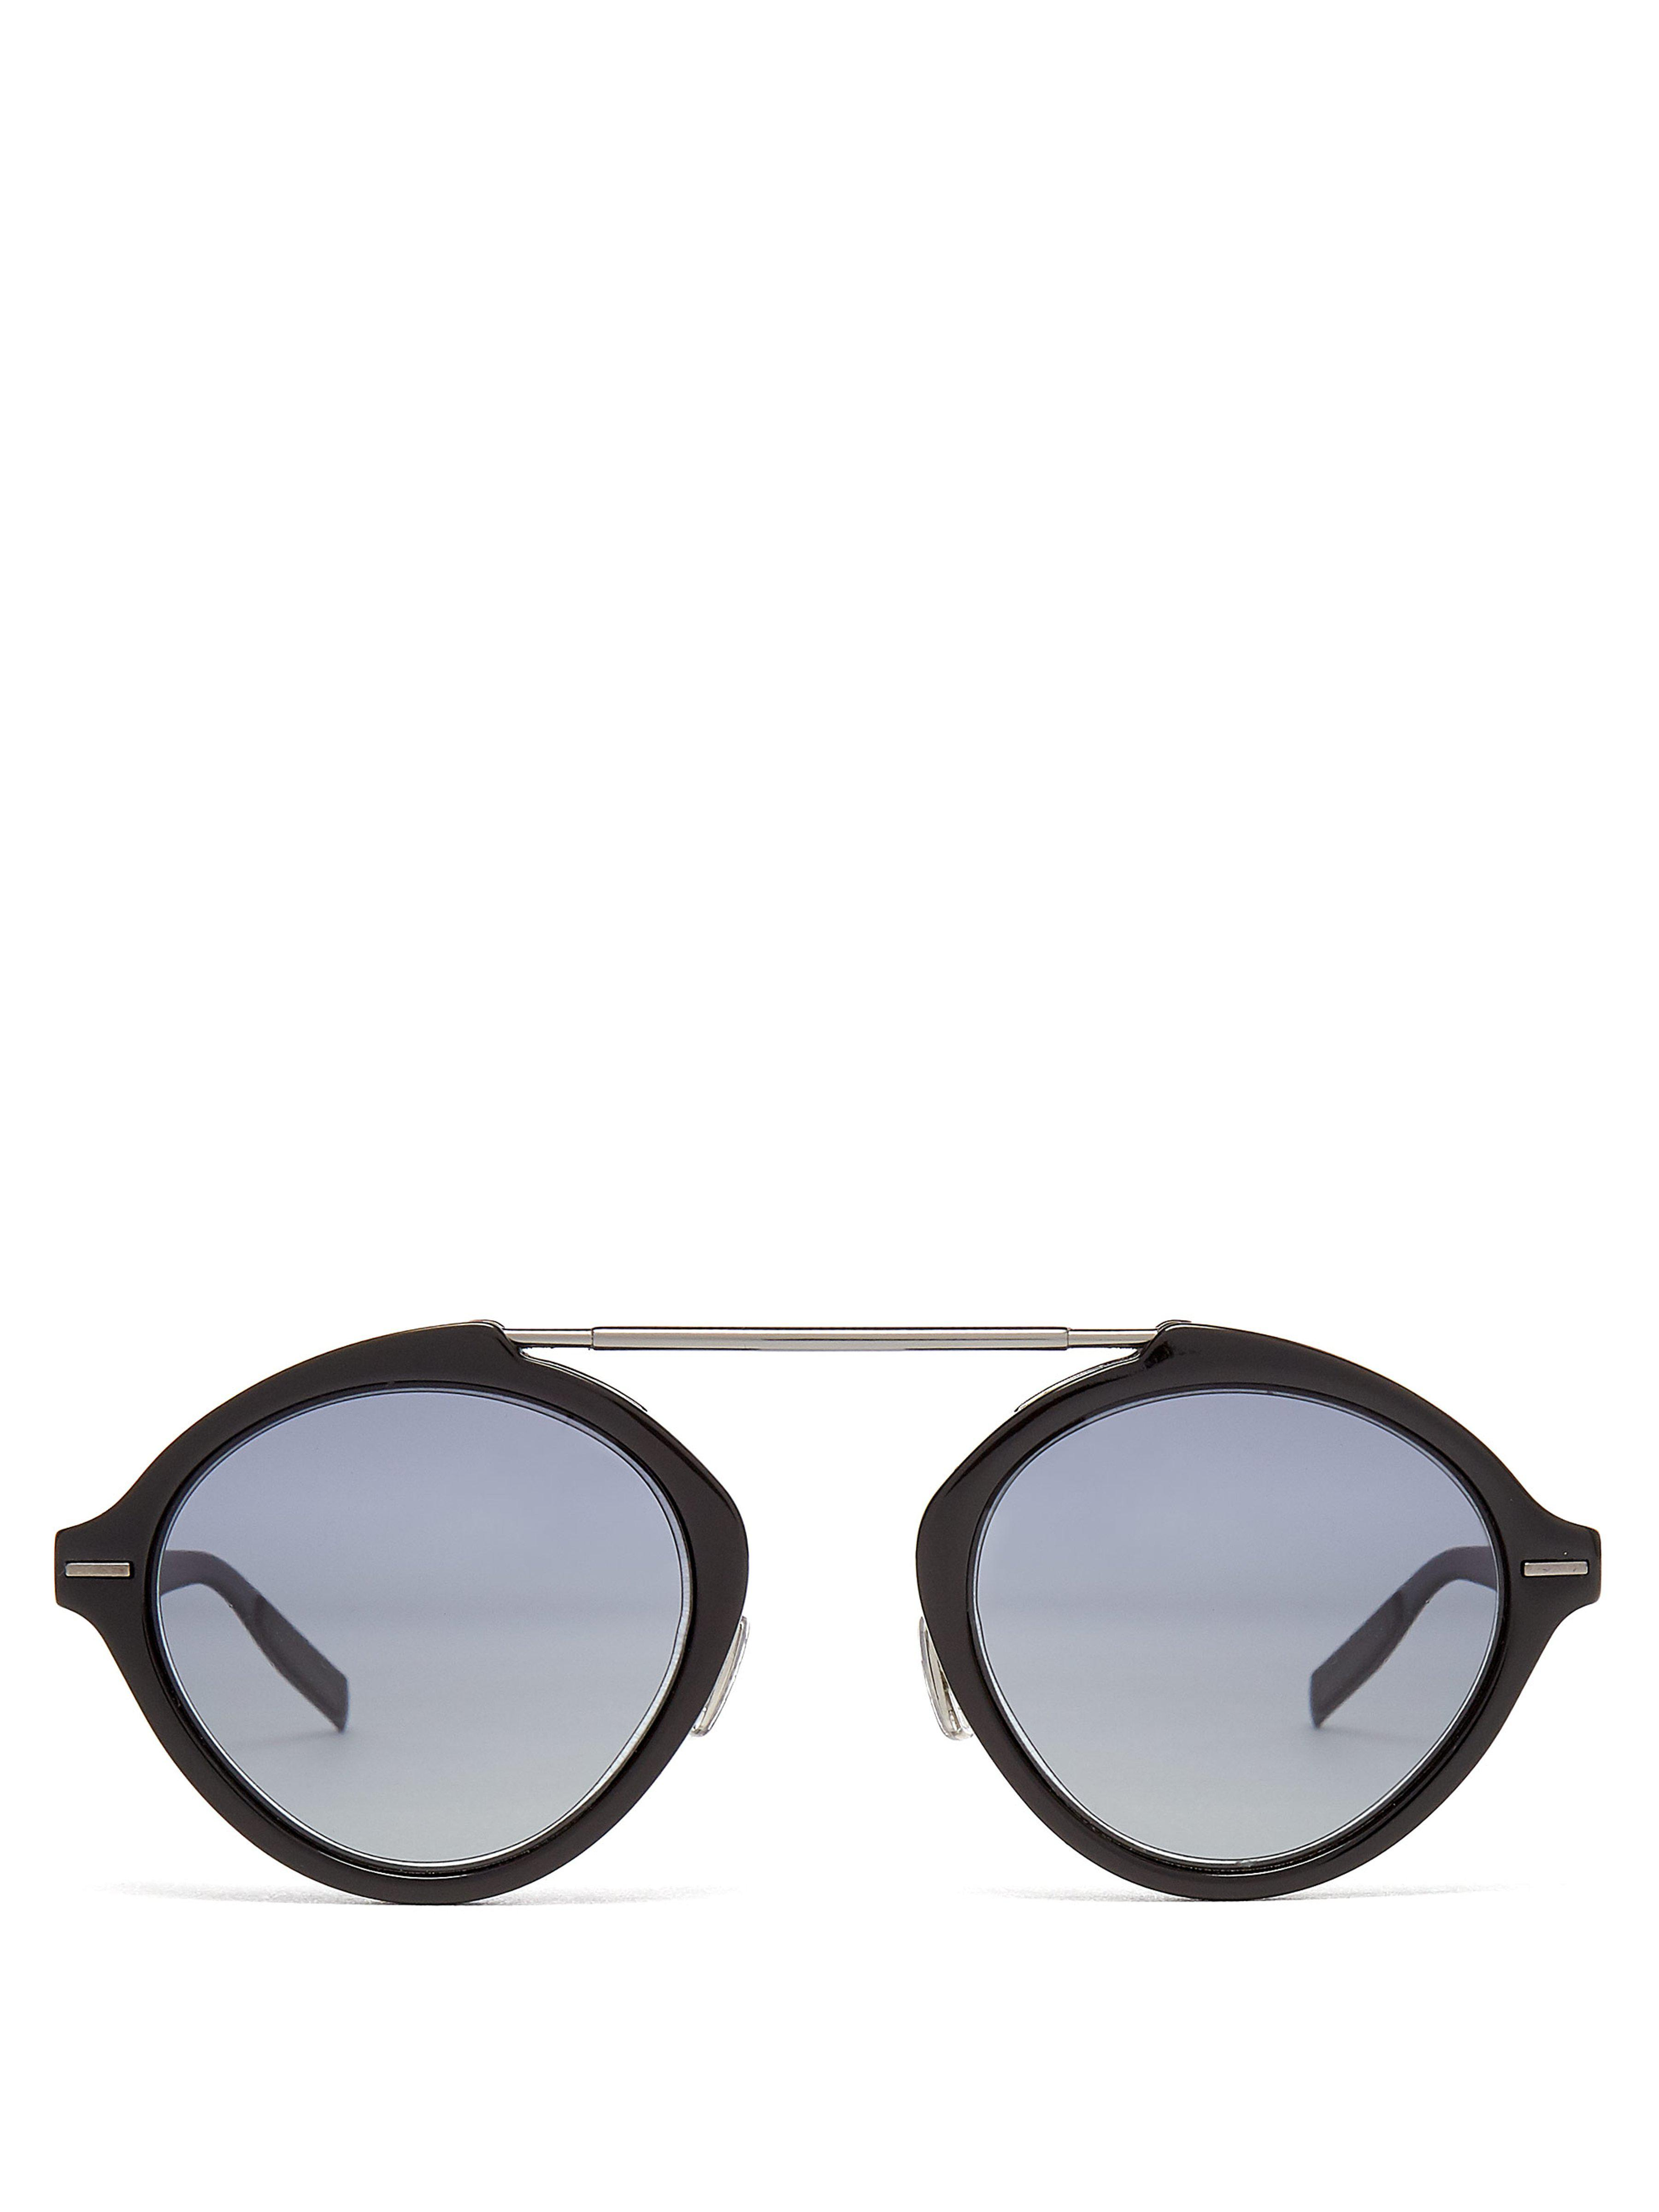 dc96dc2ac8 Dior Homme System Round Frame Sunglasses in Black for Men - Lyst